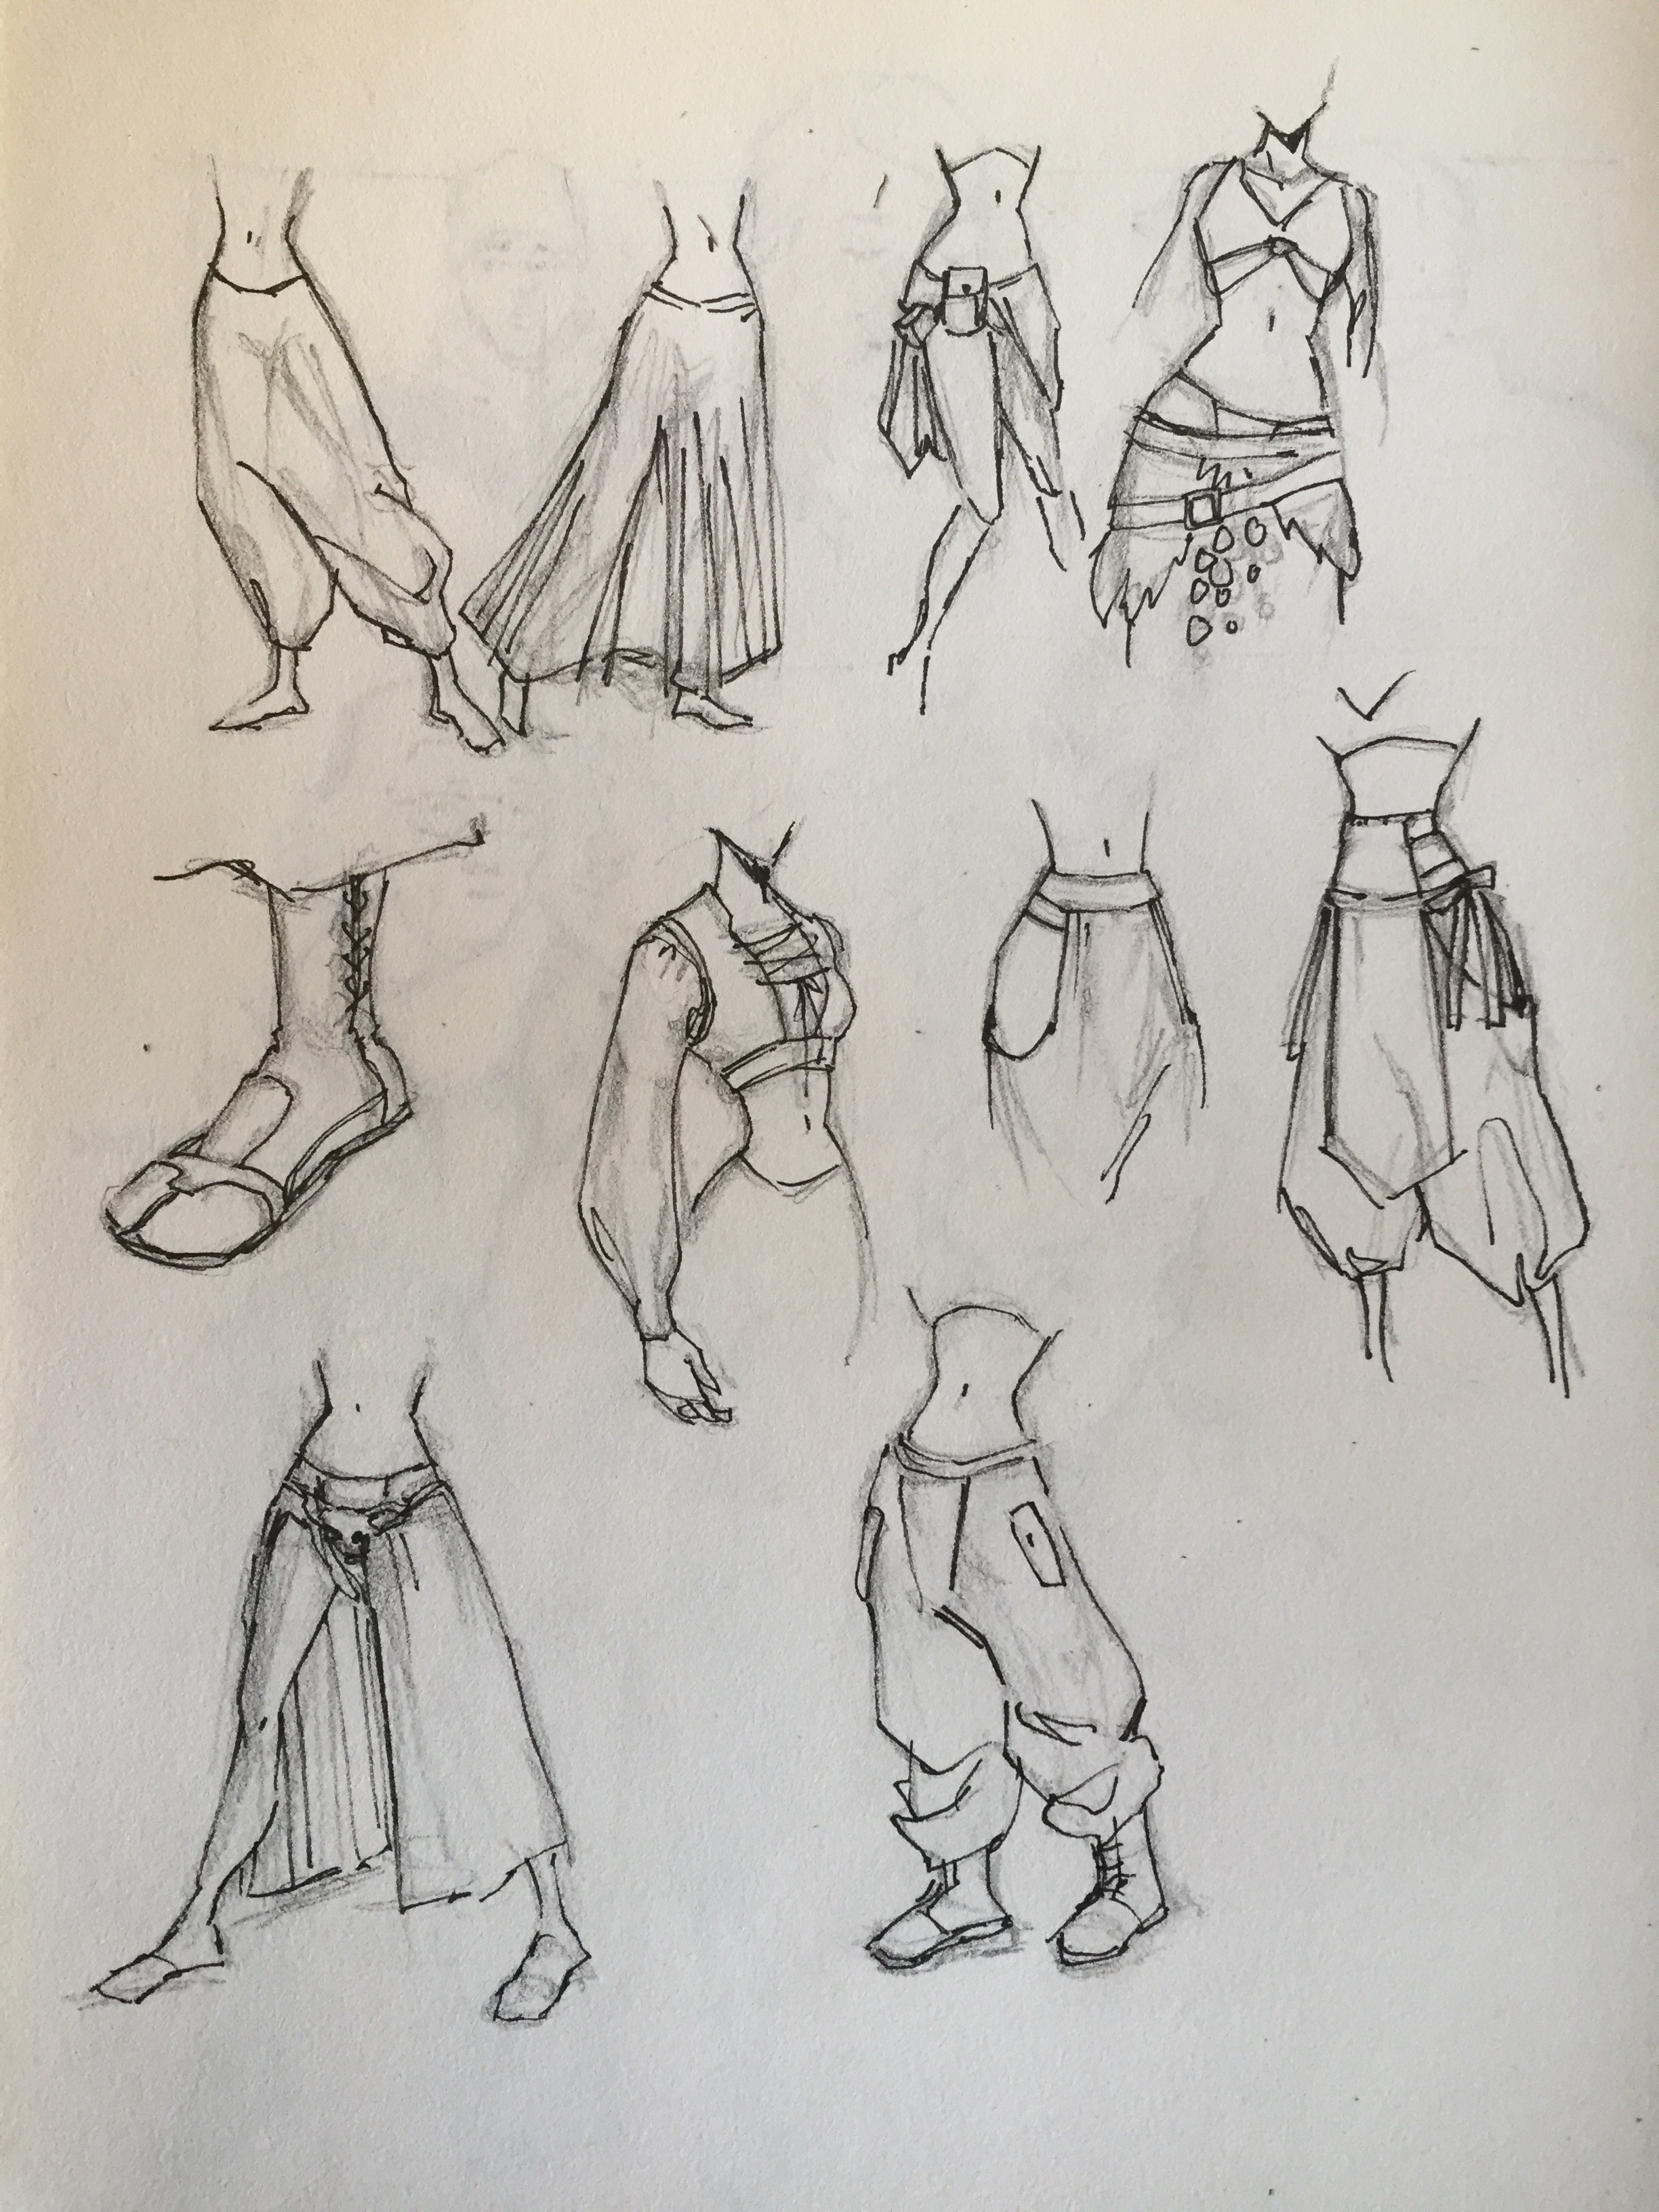 Sketches for Isa's outfit